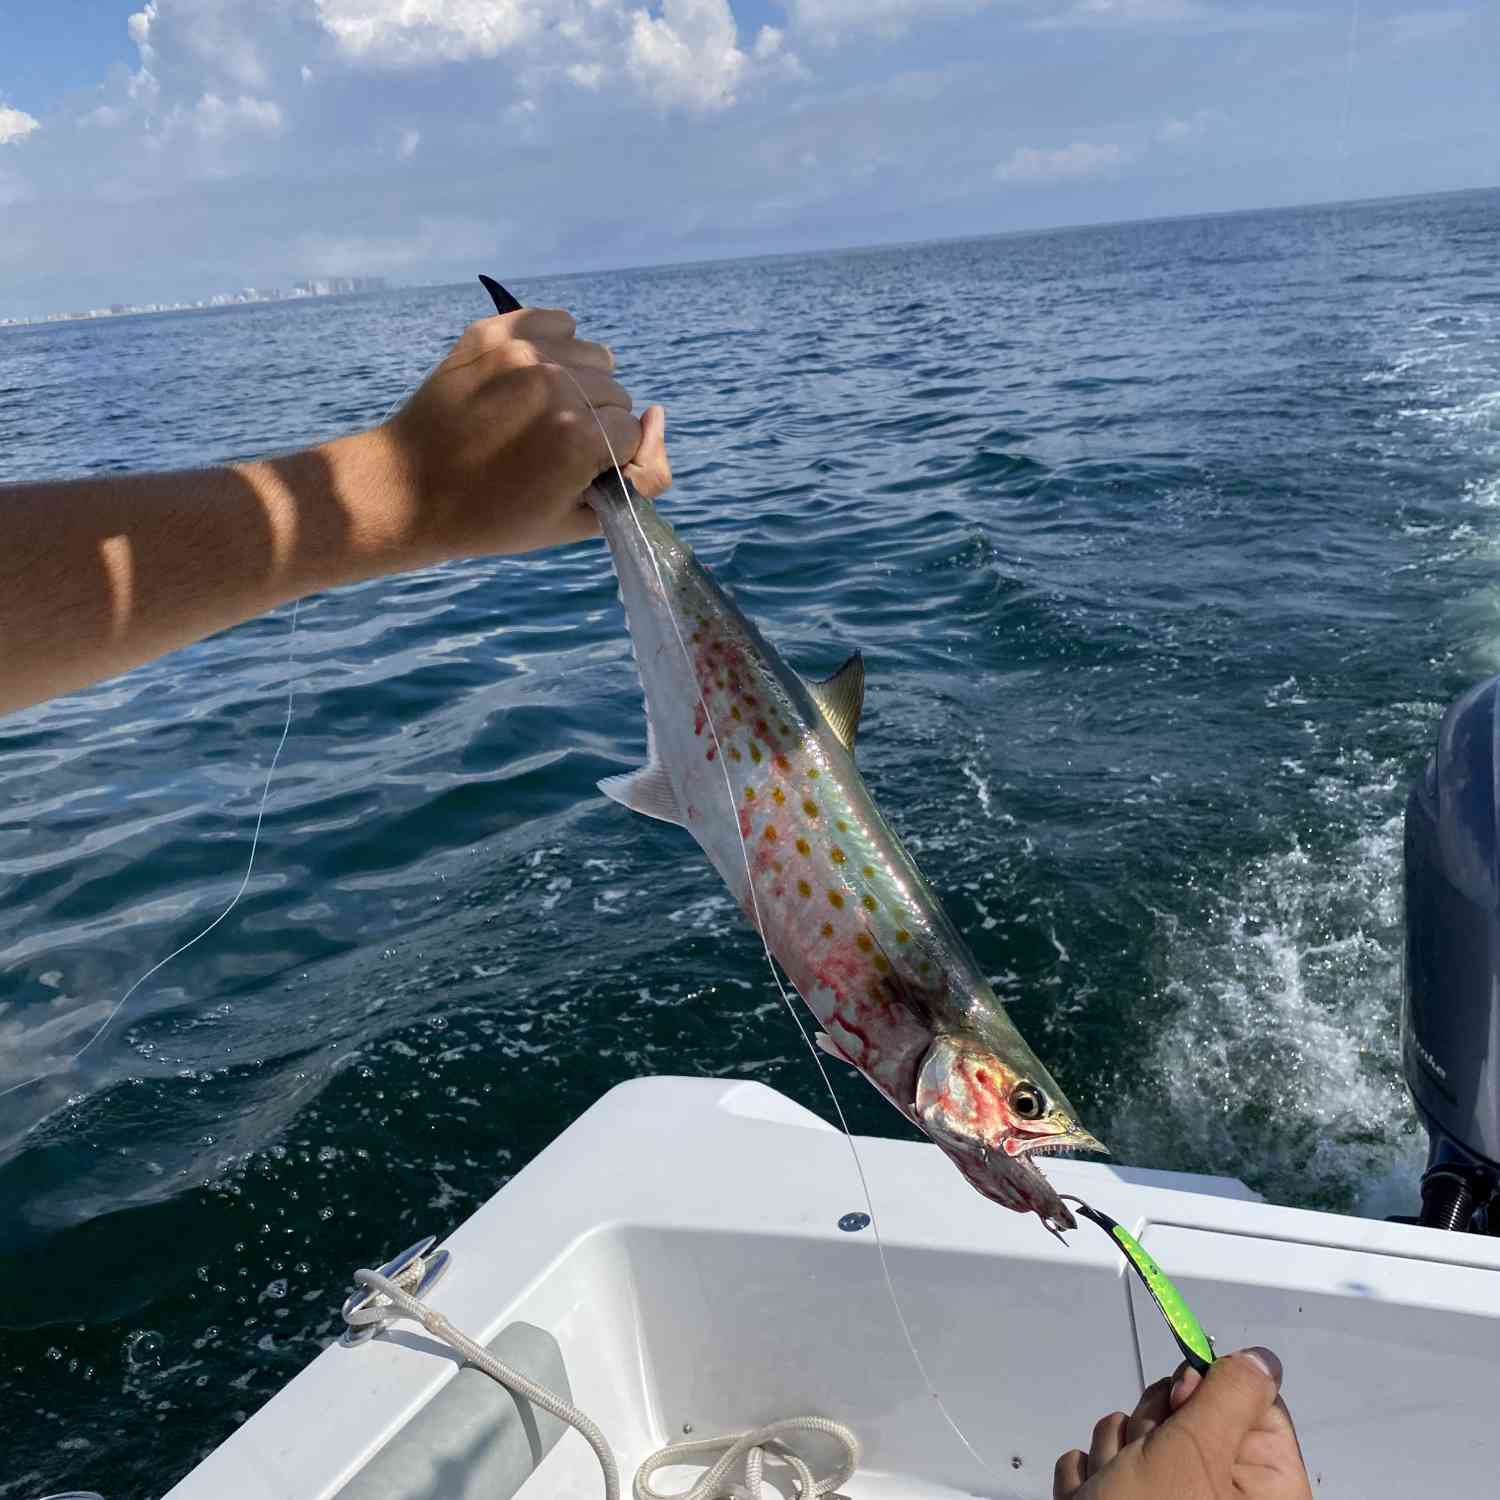 Title: Mackerel off the coast of OC Maryland. - On board their Sportsman Open 232 Center Console - Location: OC Maryland. Participating in the Photo Contest #SportsmanSeptember2020